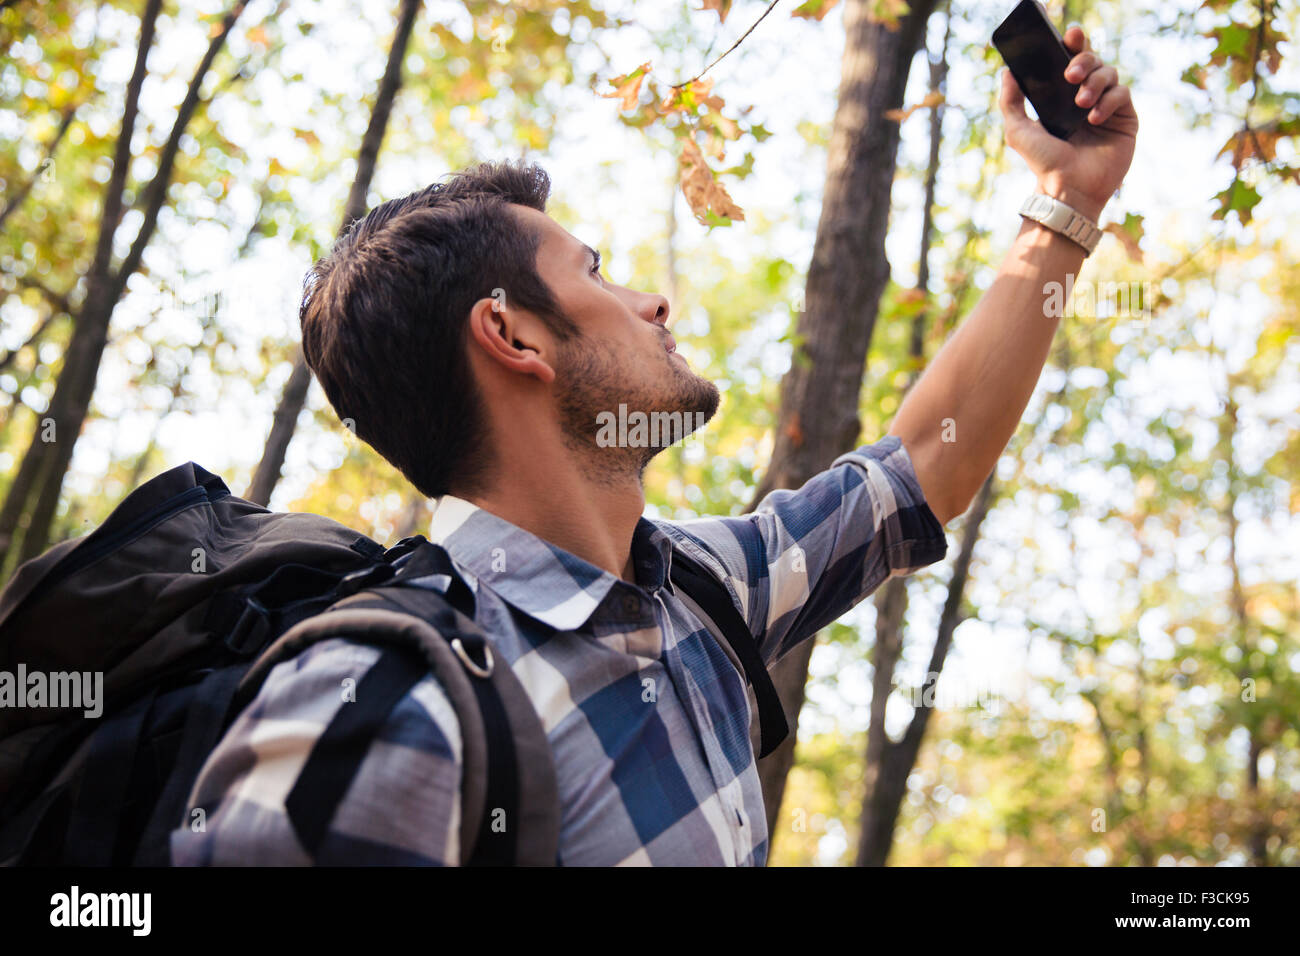 Portrait of a man searching connection on the phone in the forest - Stock Image